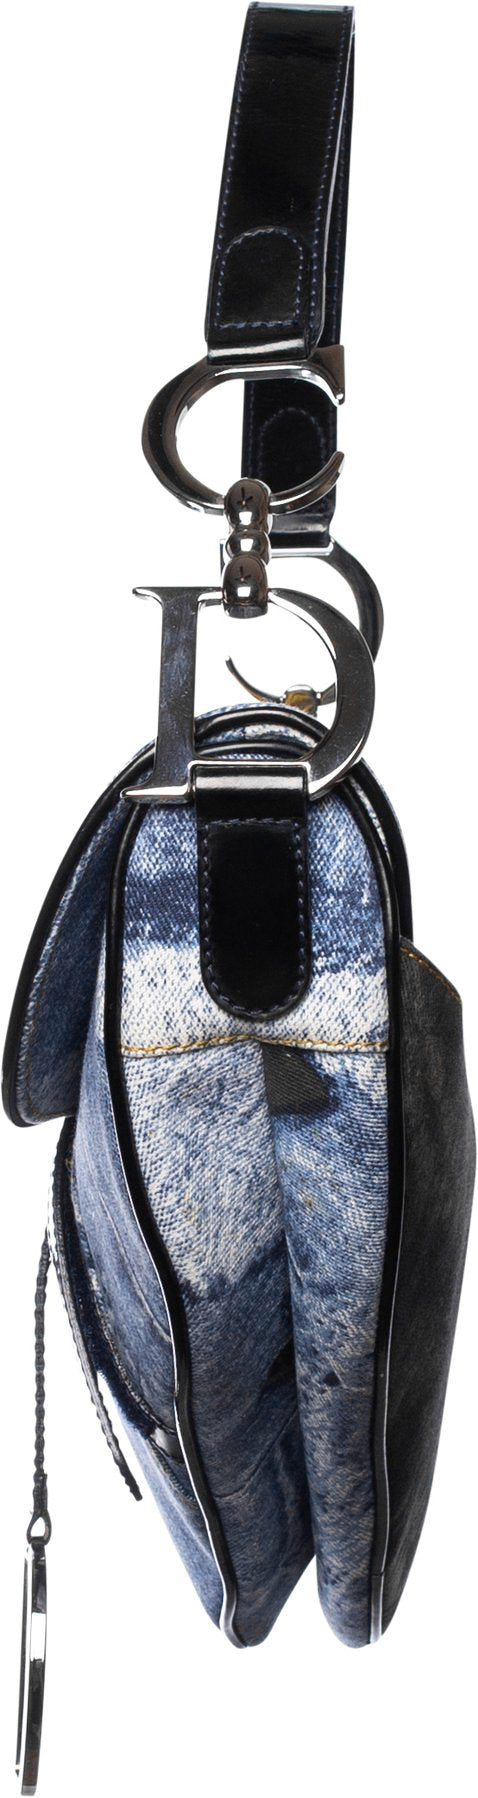 Christian Dior Miss Diorella Trompe L'oeil Limited Edition Saddle Bag